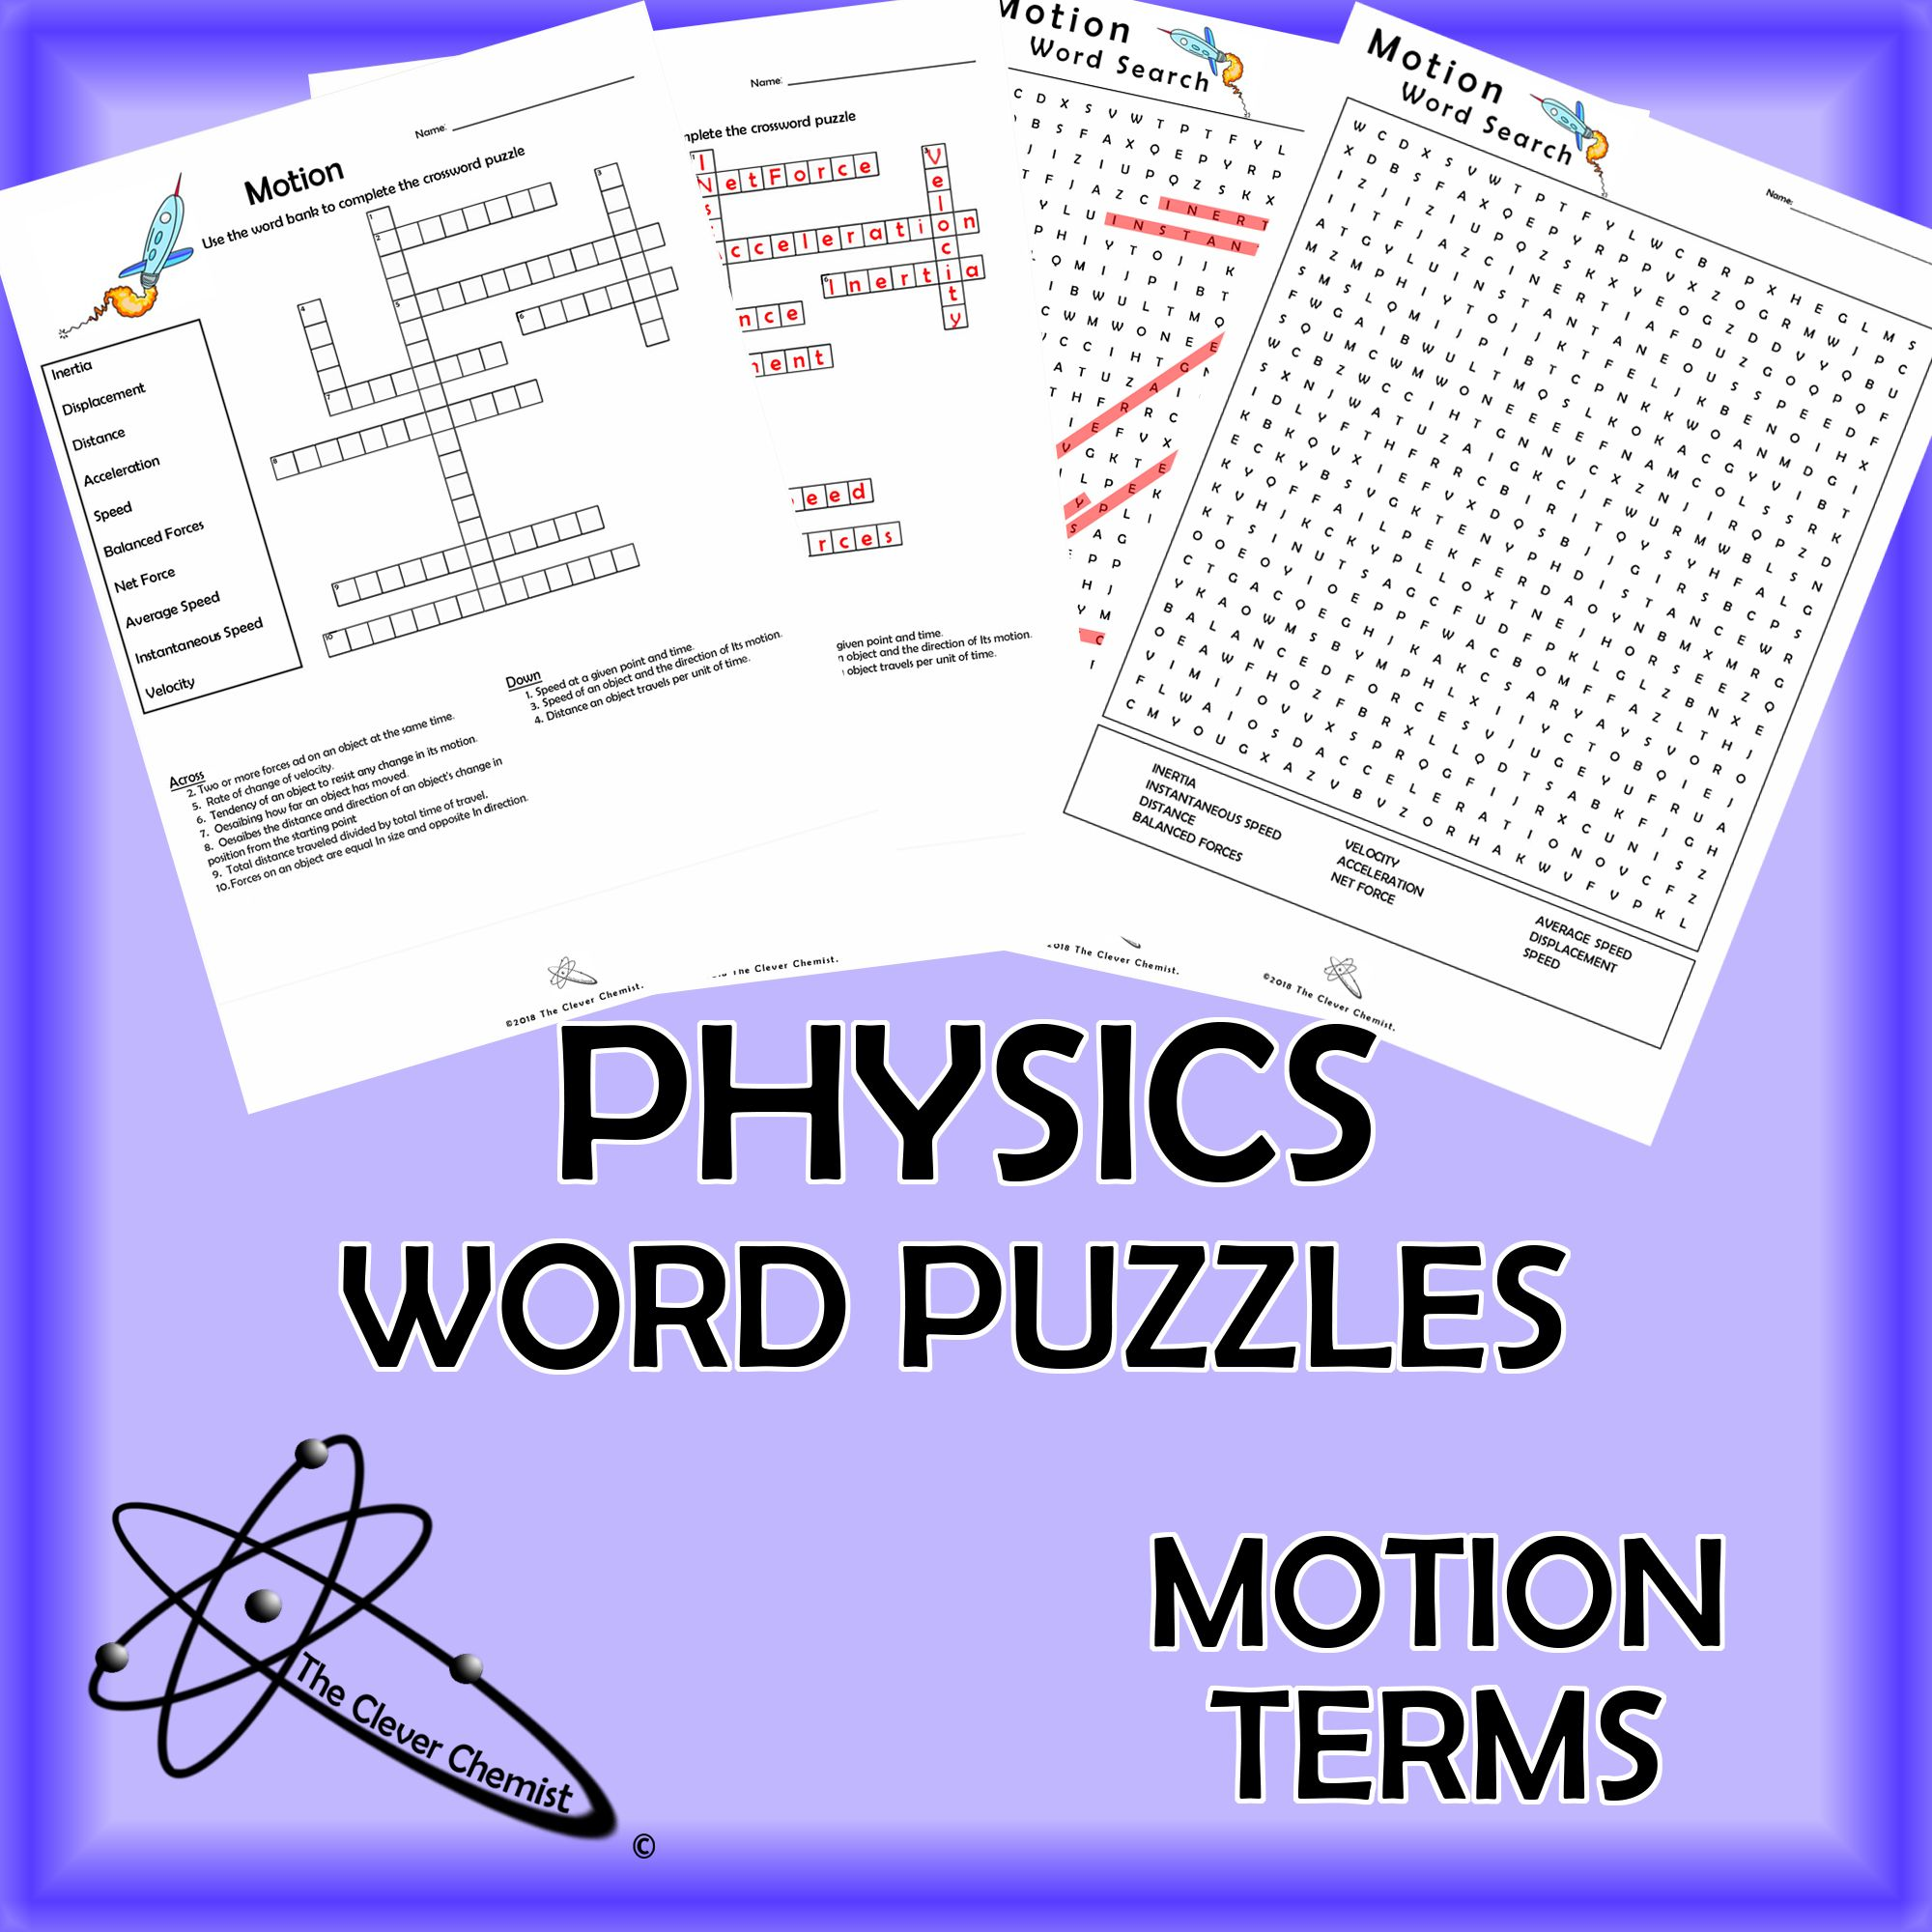 Physics Word Puzzles - Motion Terms | Physics | Word puzzles